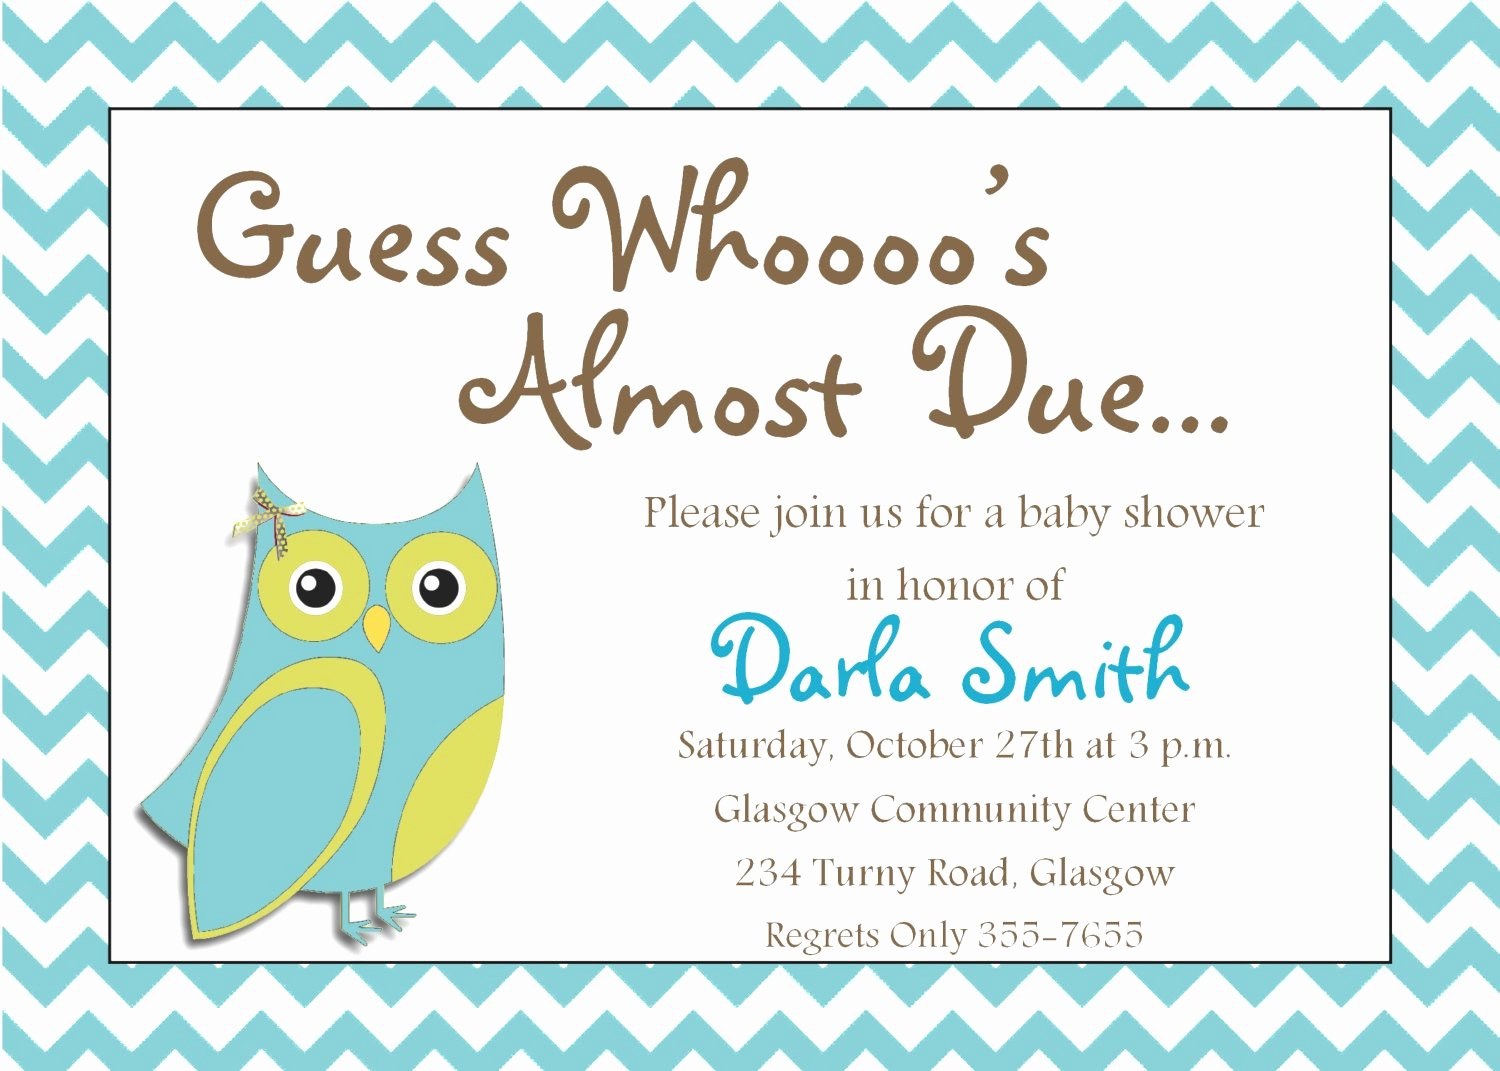 Baby Shower Template Word Elegant Baby Shower Templates for Word Mughals